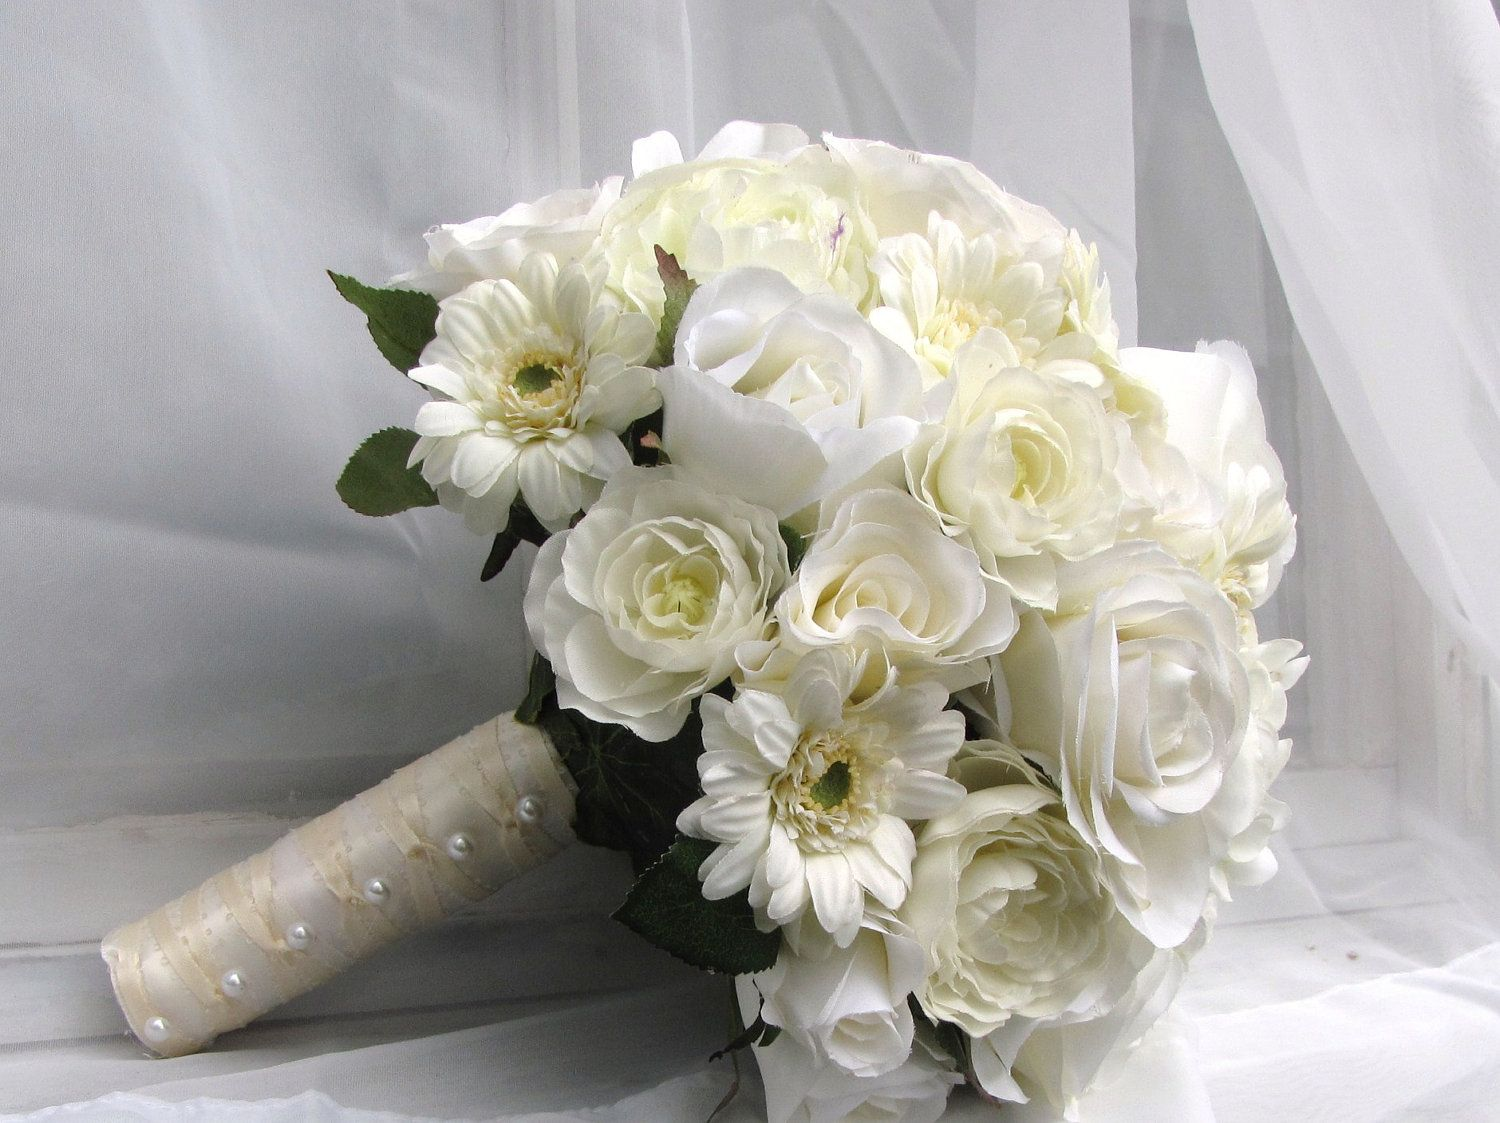 Silk Bridal Wedding Bouquet With Cream Roses Gerbera Daisies